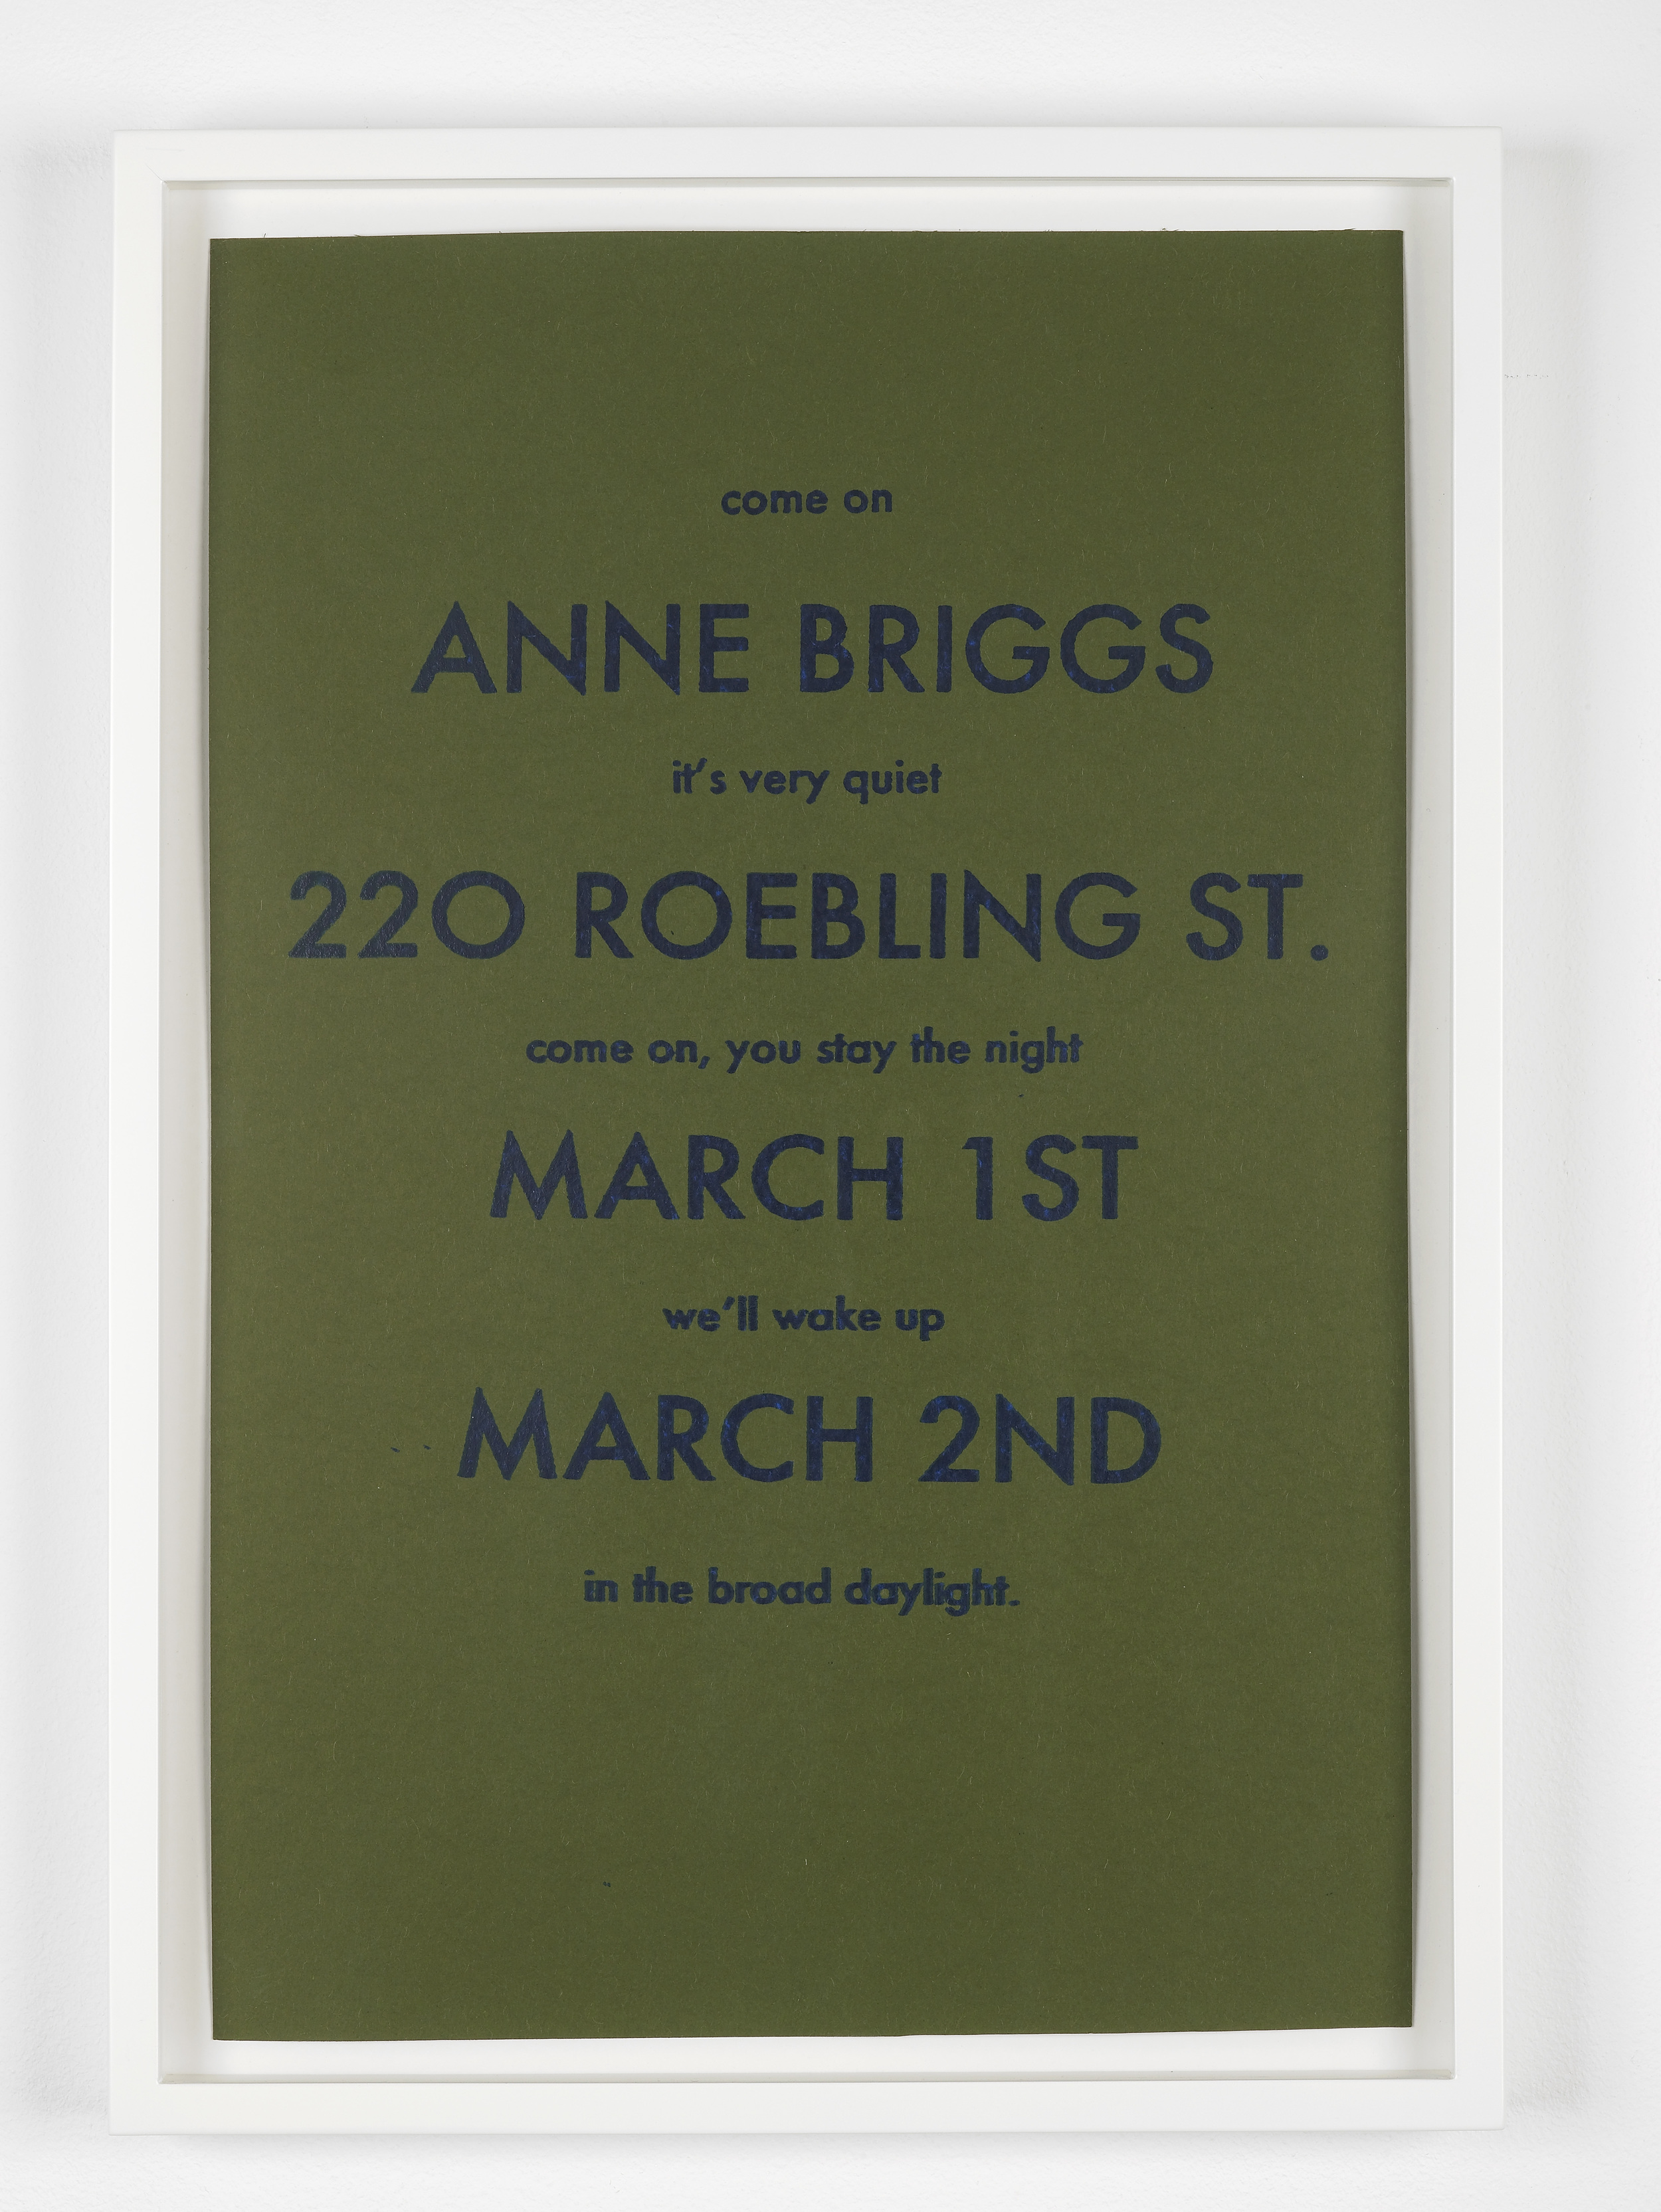 Marc Hundley Anne Briggs 220 Roebling St. March 1st & March 2nd 2012 Ink on paper 45.7 x 30.5 cm / 18 x 12 in